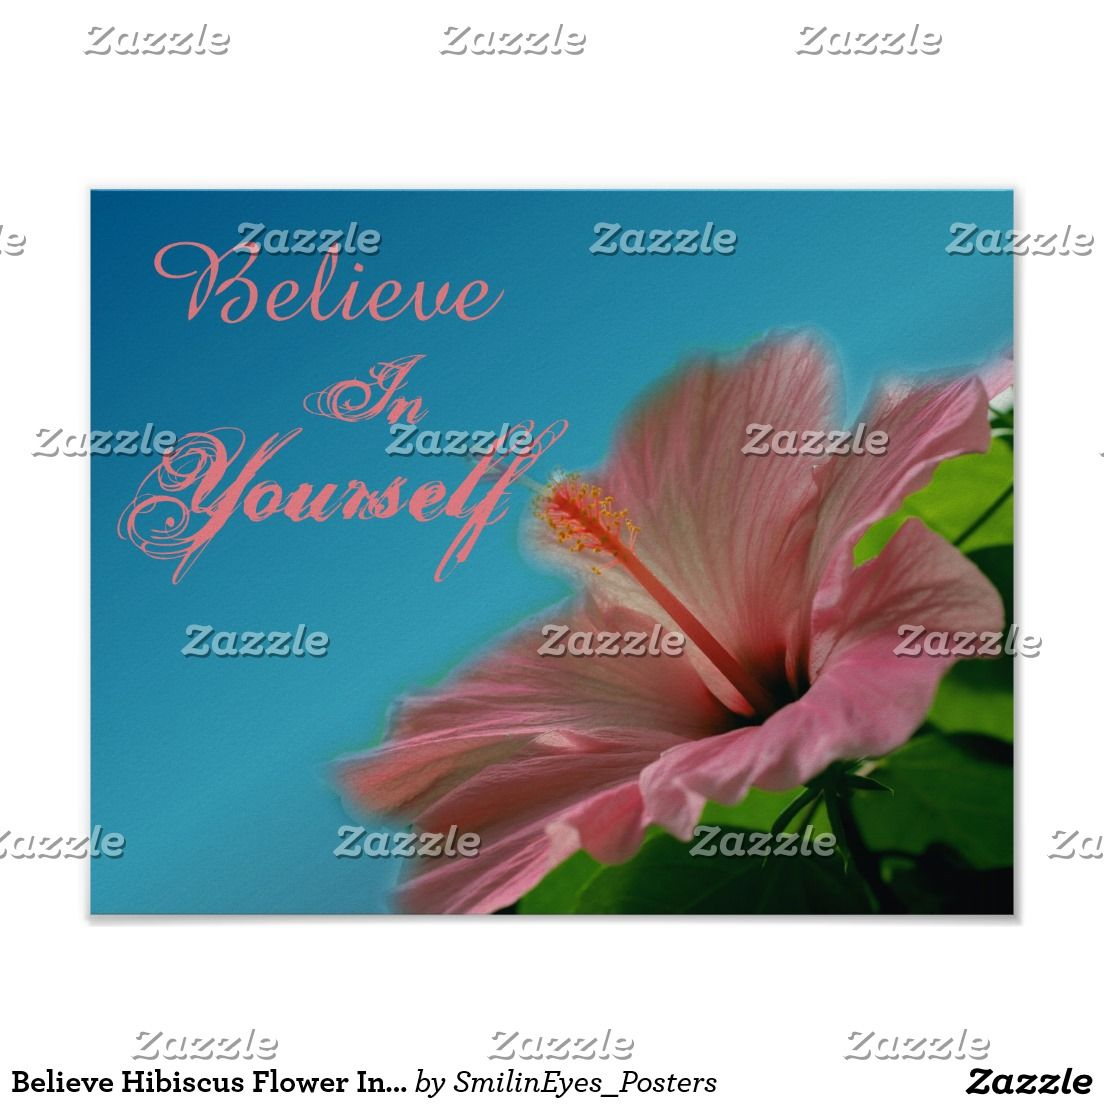 Believe Hibiscus Flower Inspirational Quote Poster Zazzle Com Inspirational Quotes Posters Inspirational Posters Kindness Quotes Inspirational